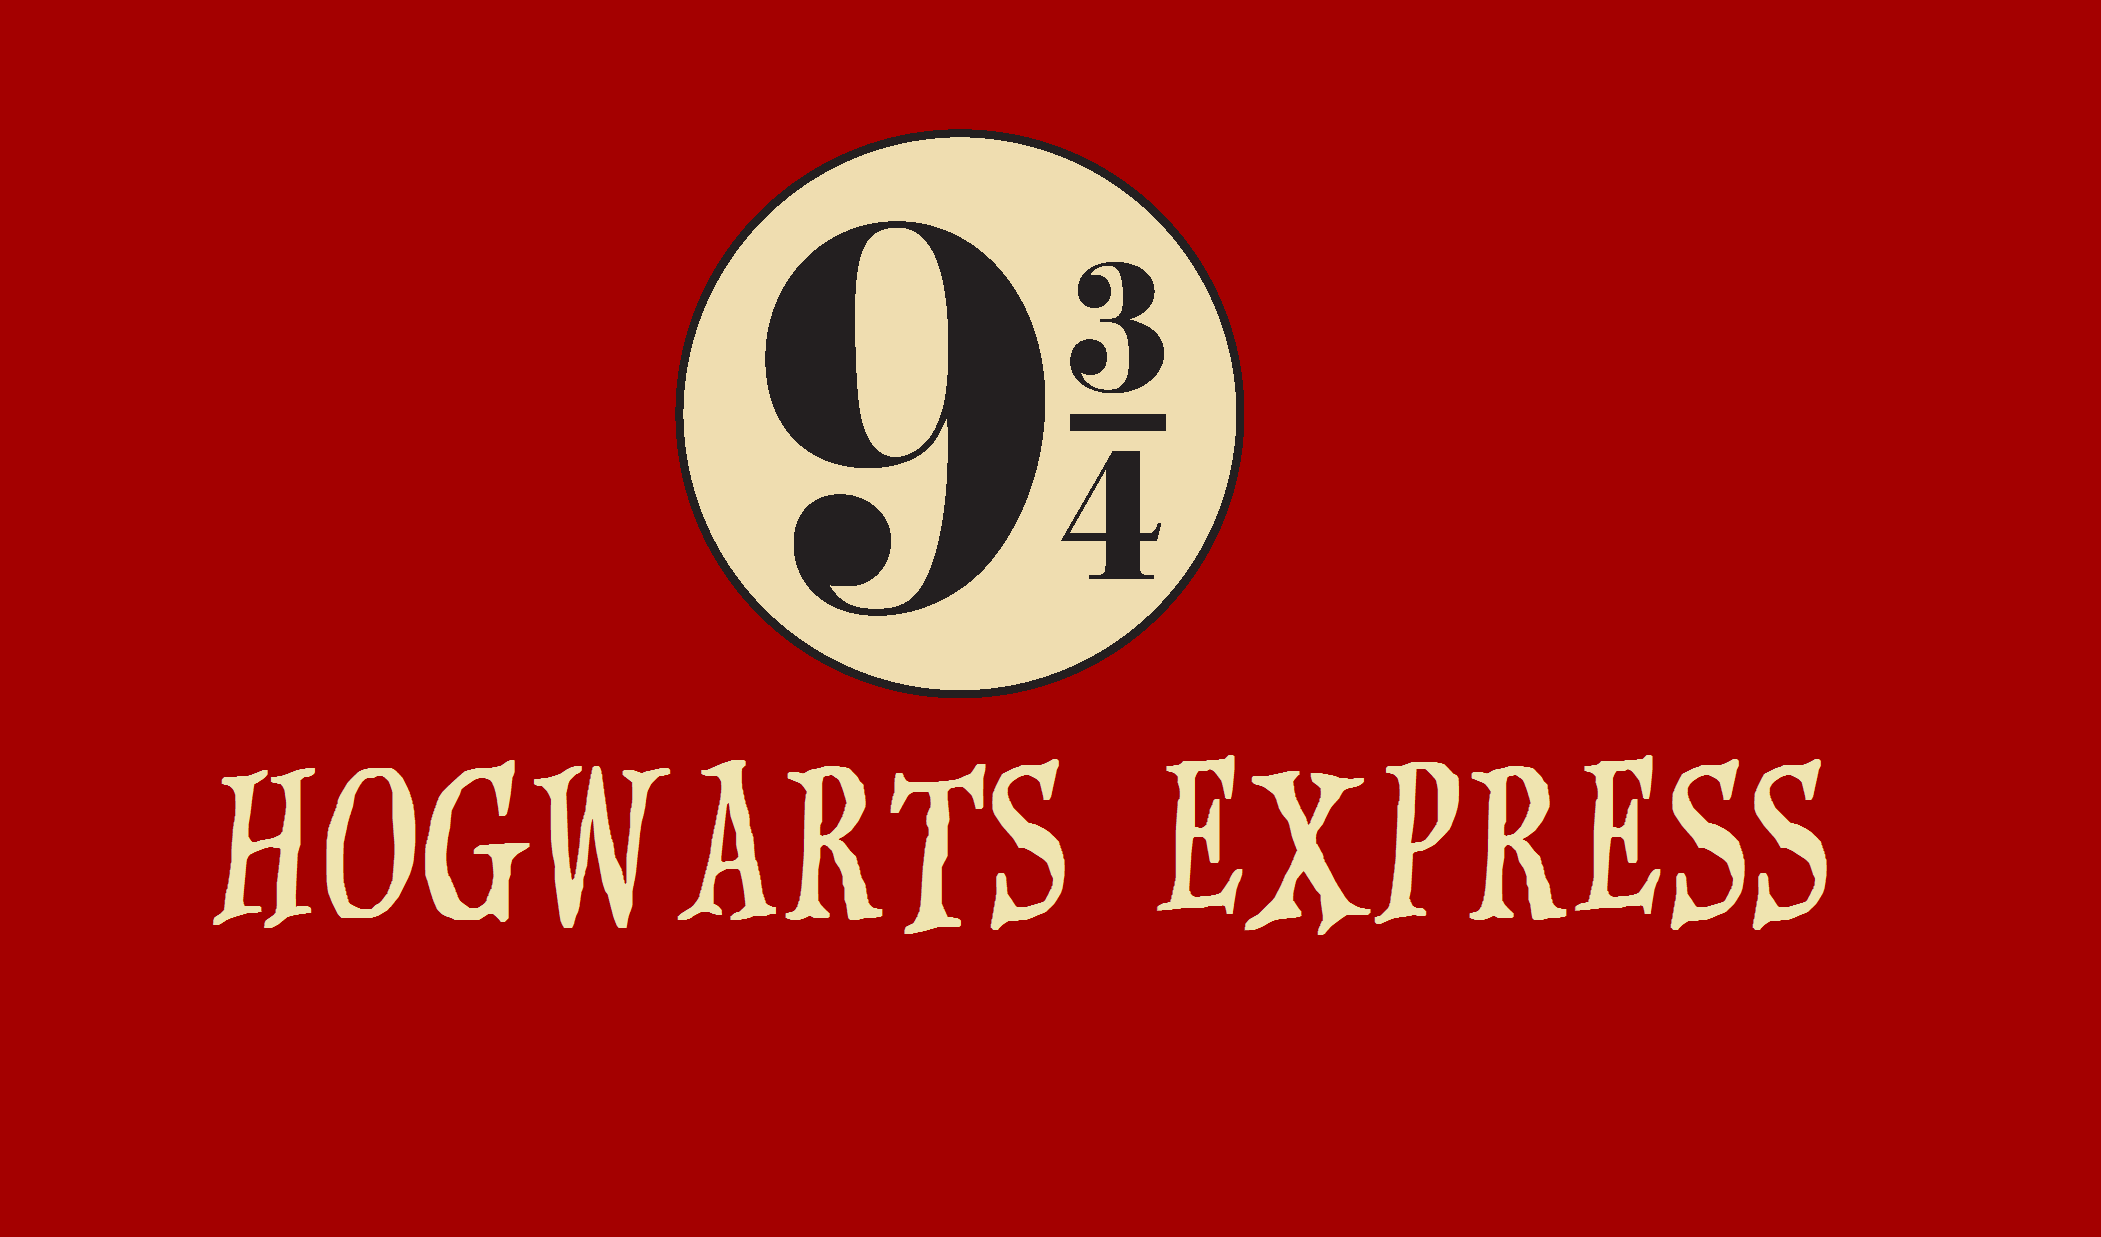 photo about Platform 9 3 4 Sign Printable named system 9 3/4 indication printable - Recherche Google 9 3/4